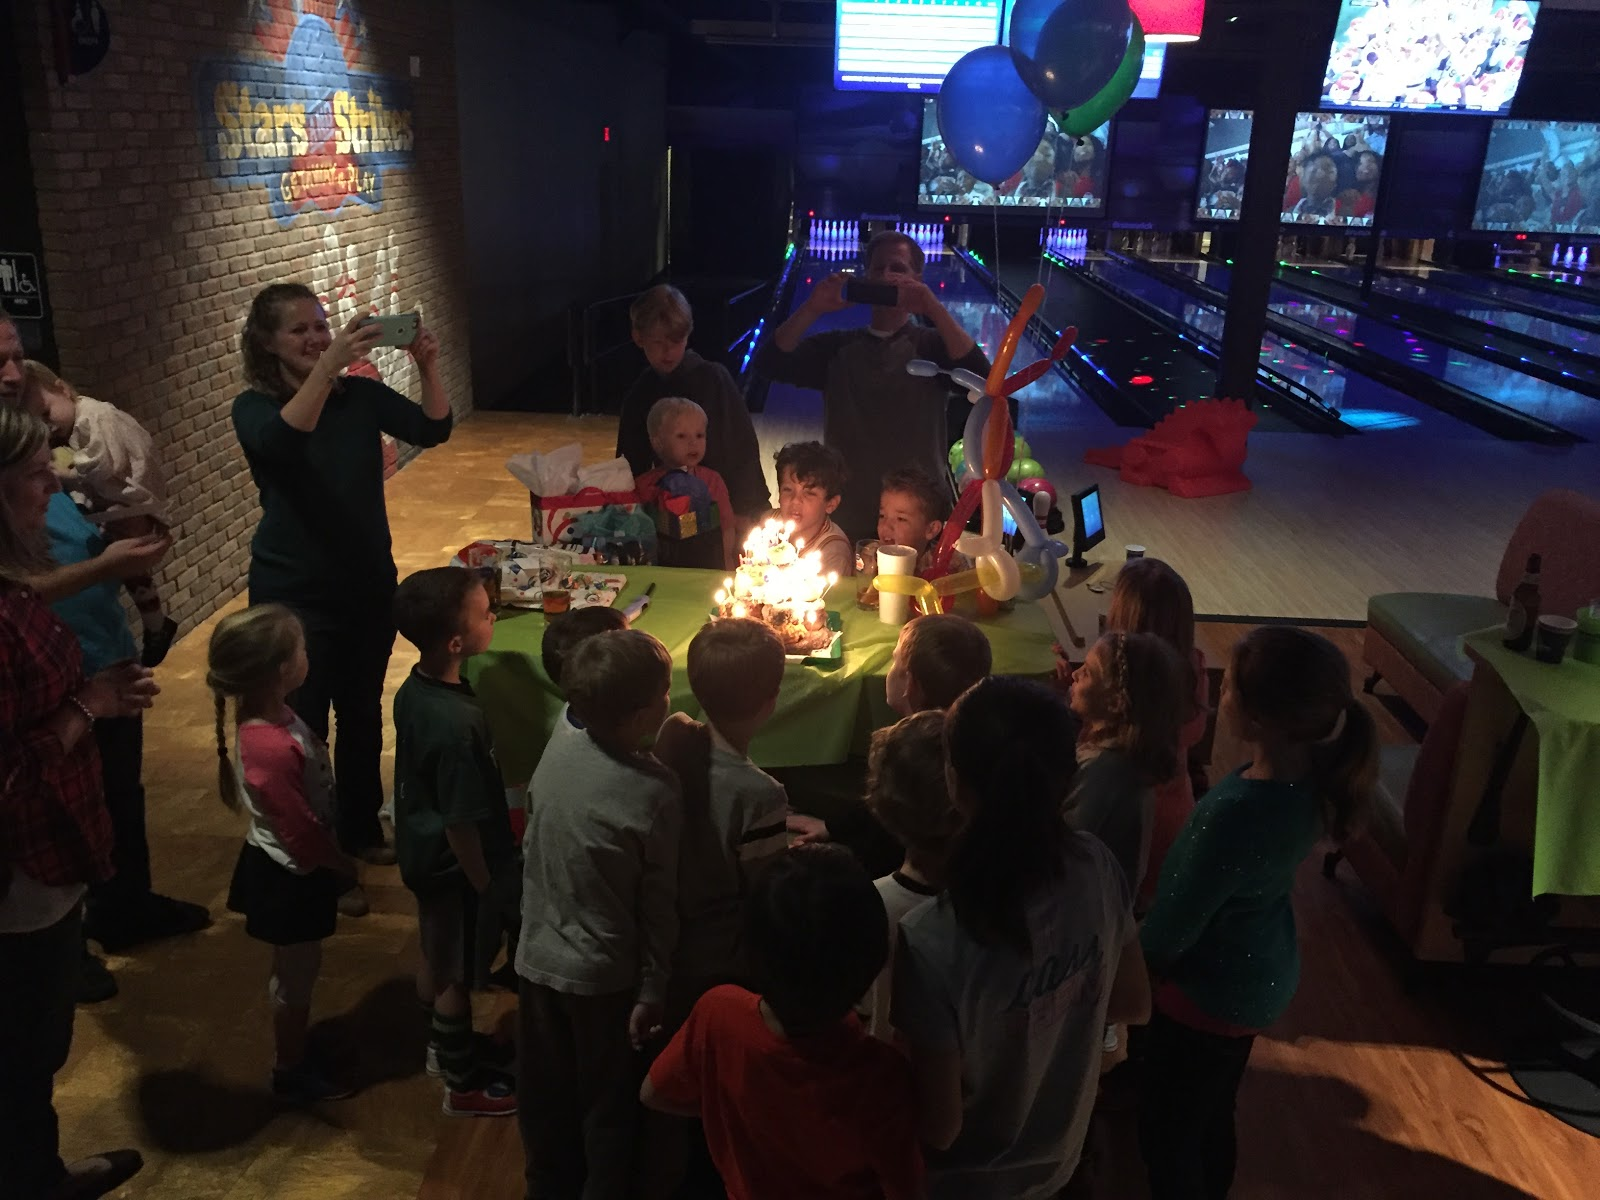 birthday party fun with friends Just Shy